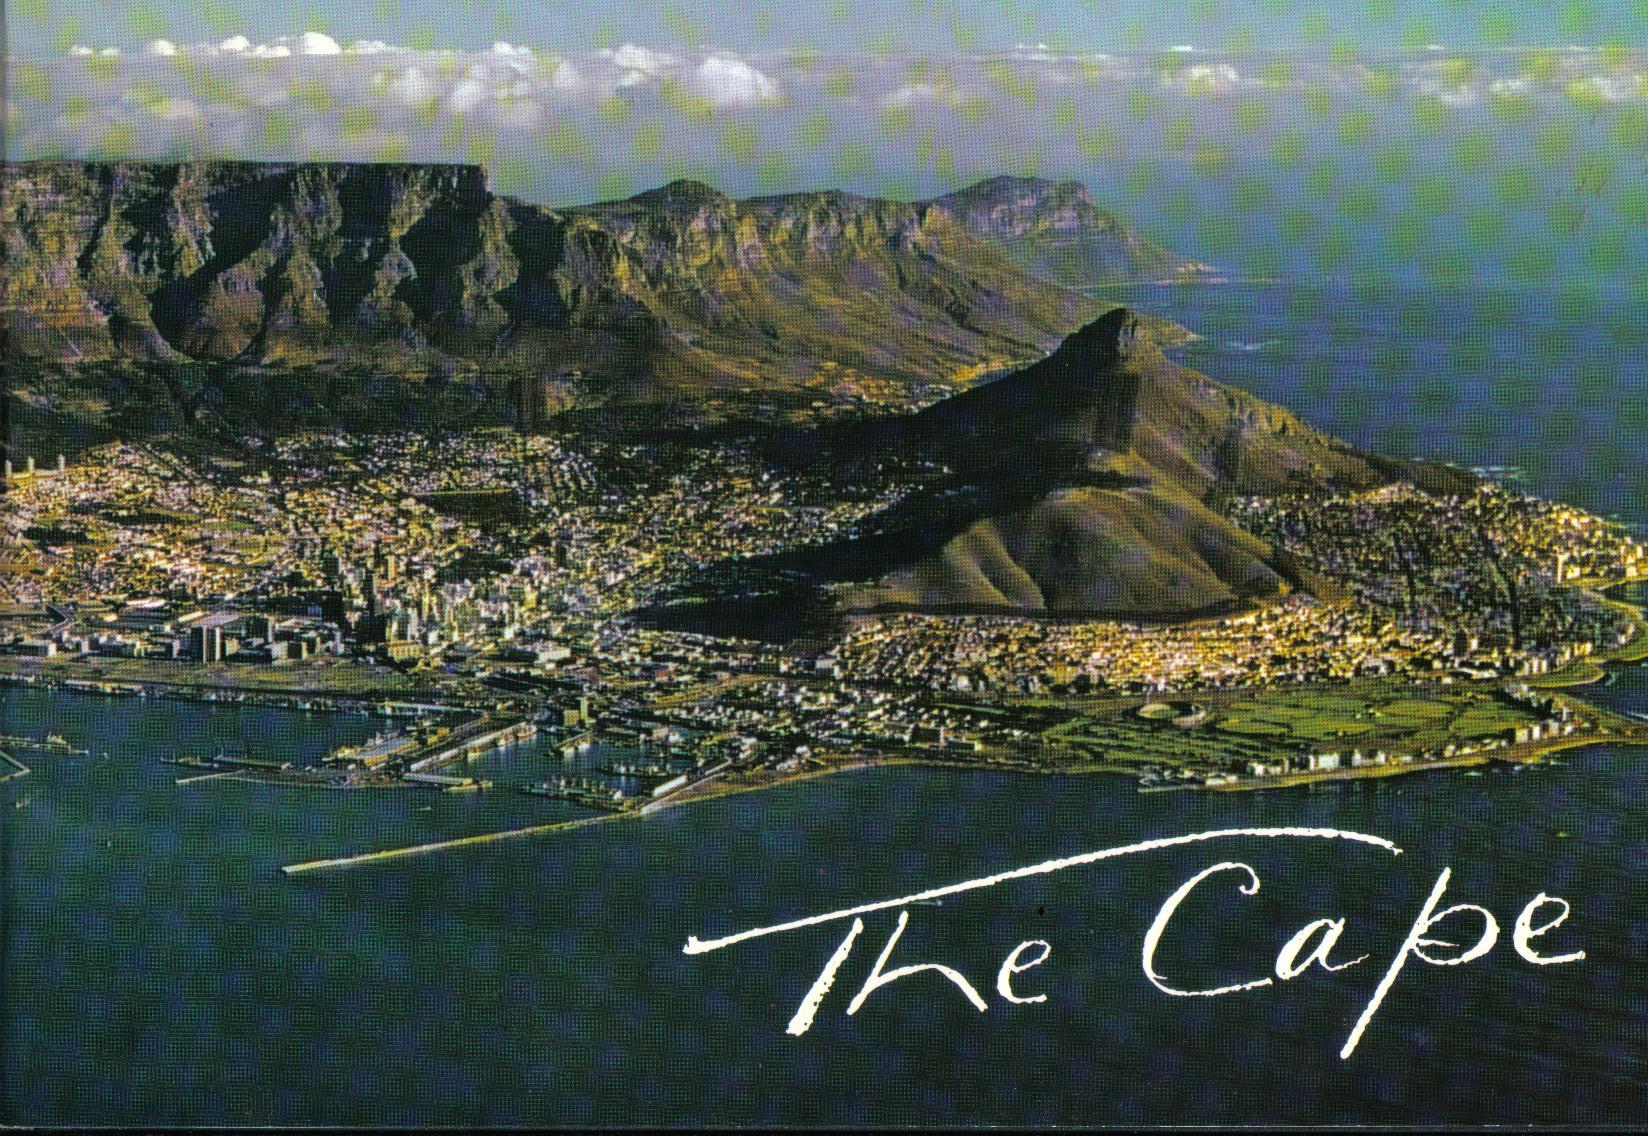 The cape	published by Terence J.McNally